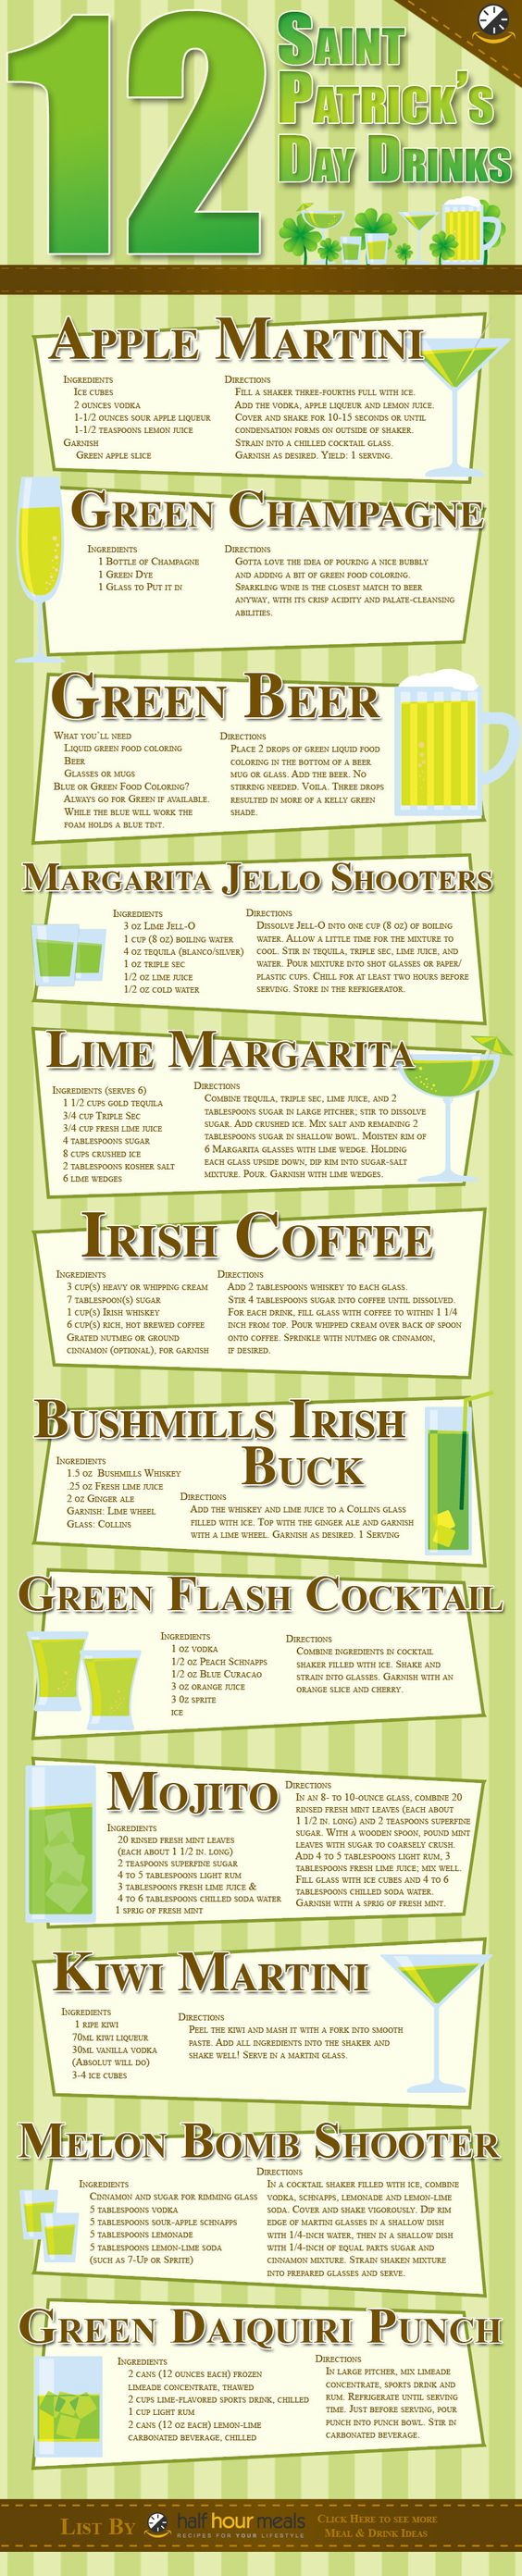 St Patrick 39 S Day Patrick O 39 Brian And Drink Recipes On